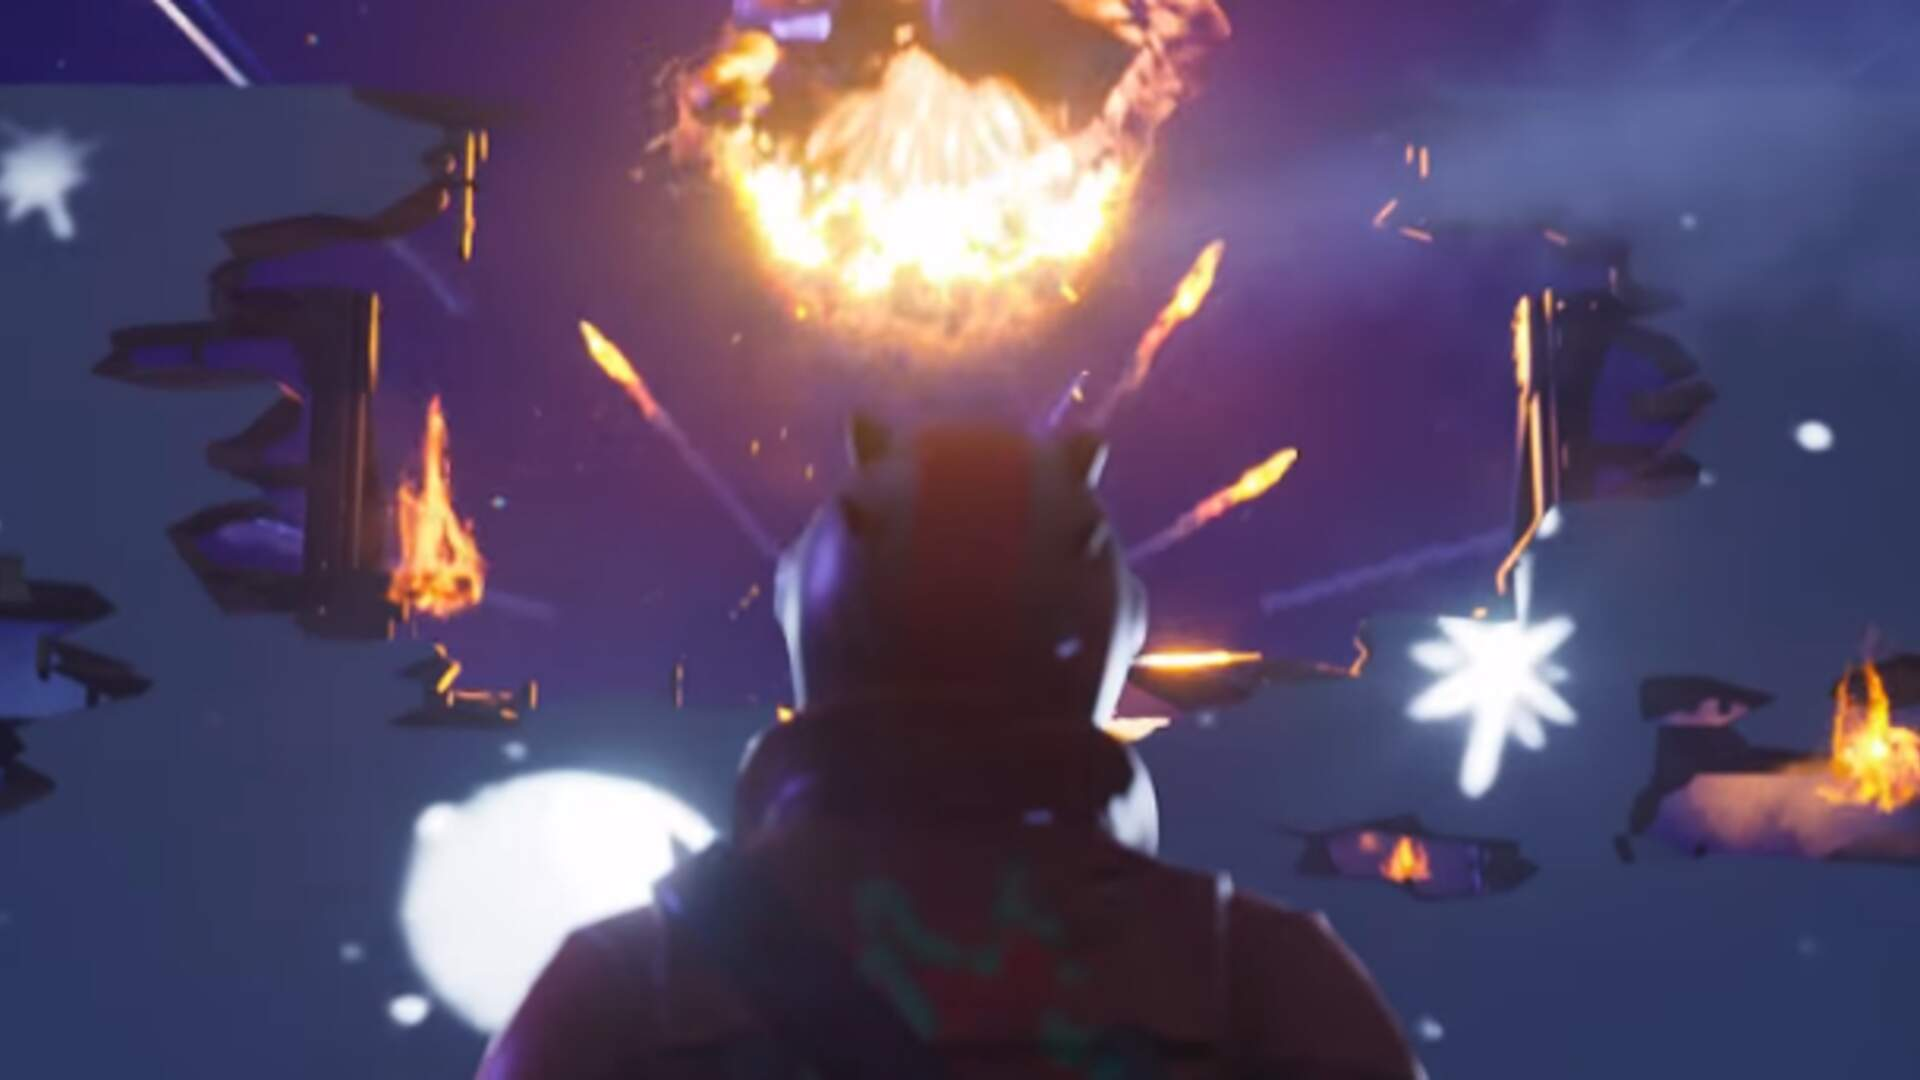 Fortnite Birthday Celebration Event Revealed - New Emotes, Challenges, and Rewards Detailed